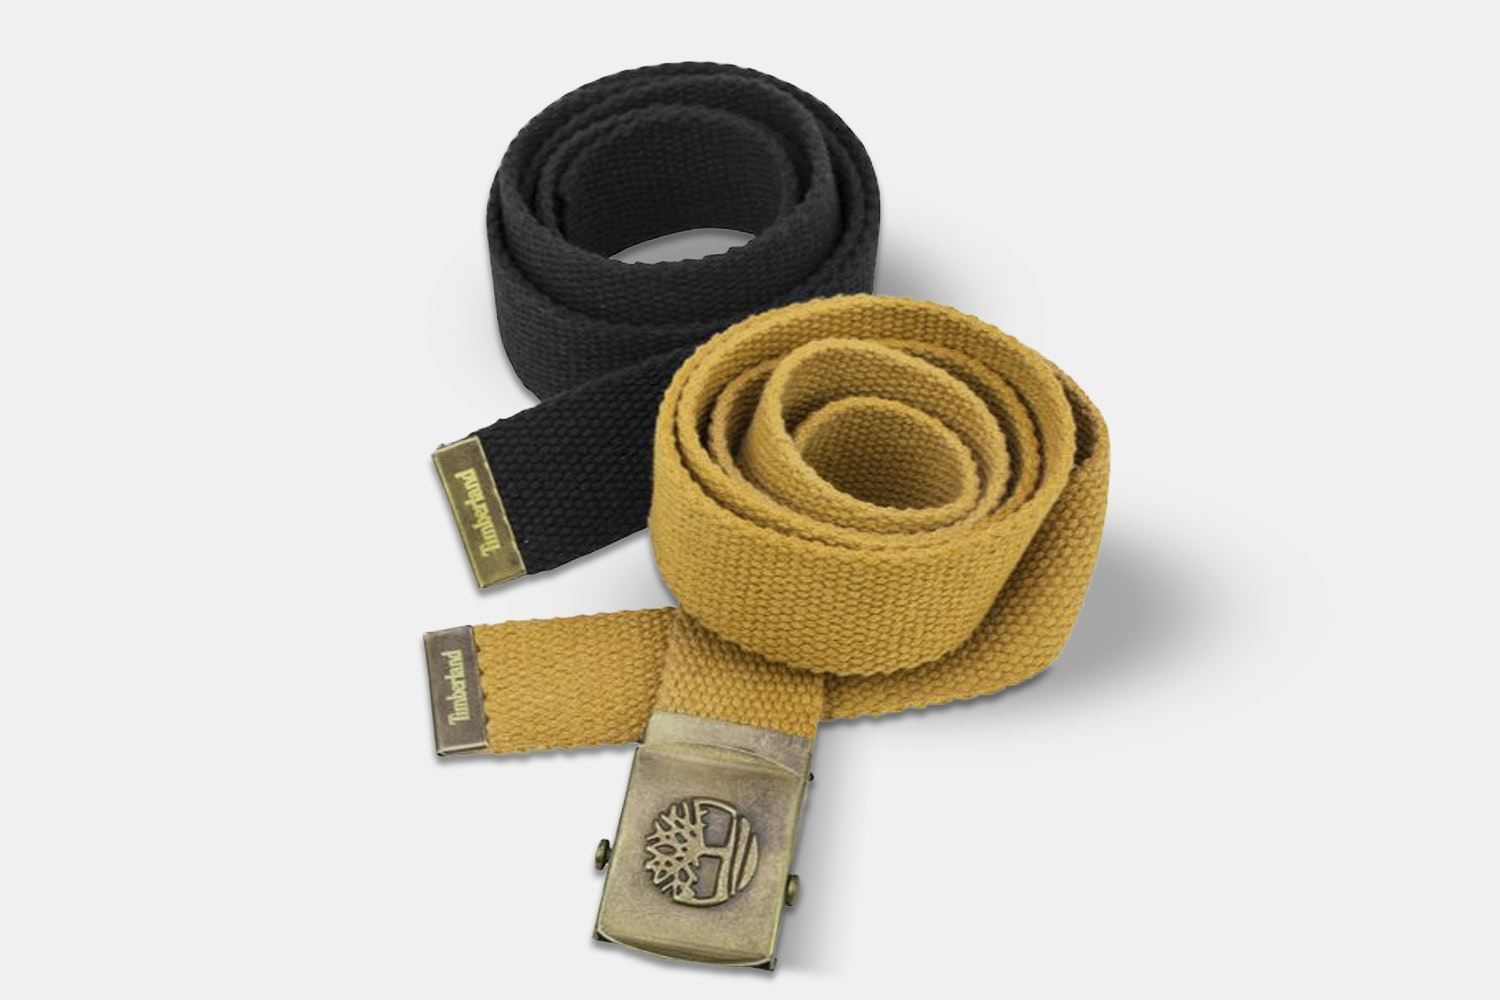 Timberland Belts (2-Pack)